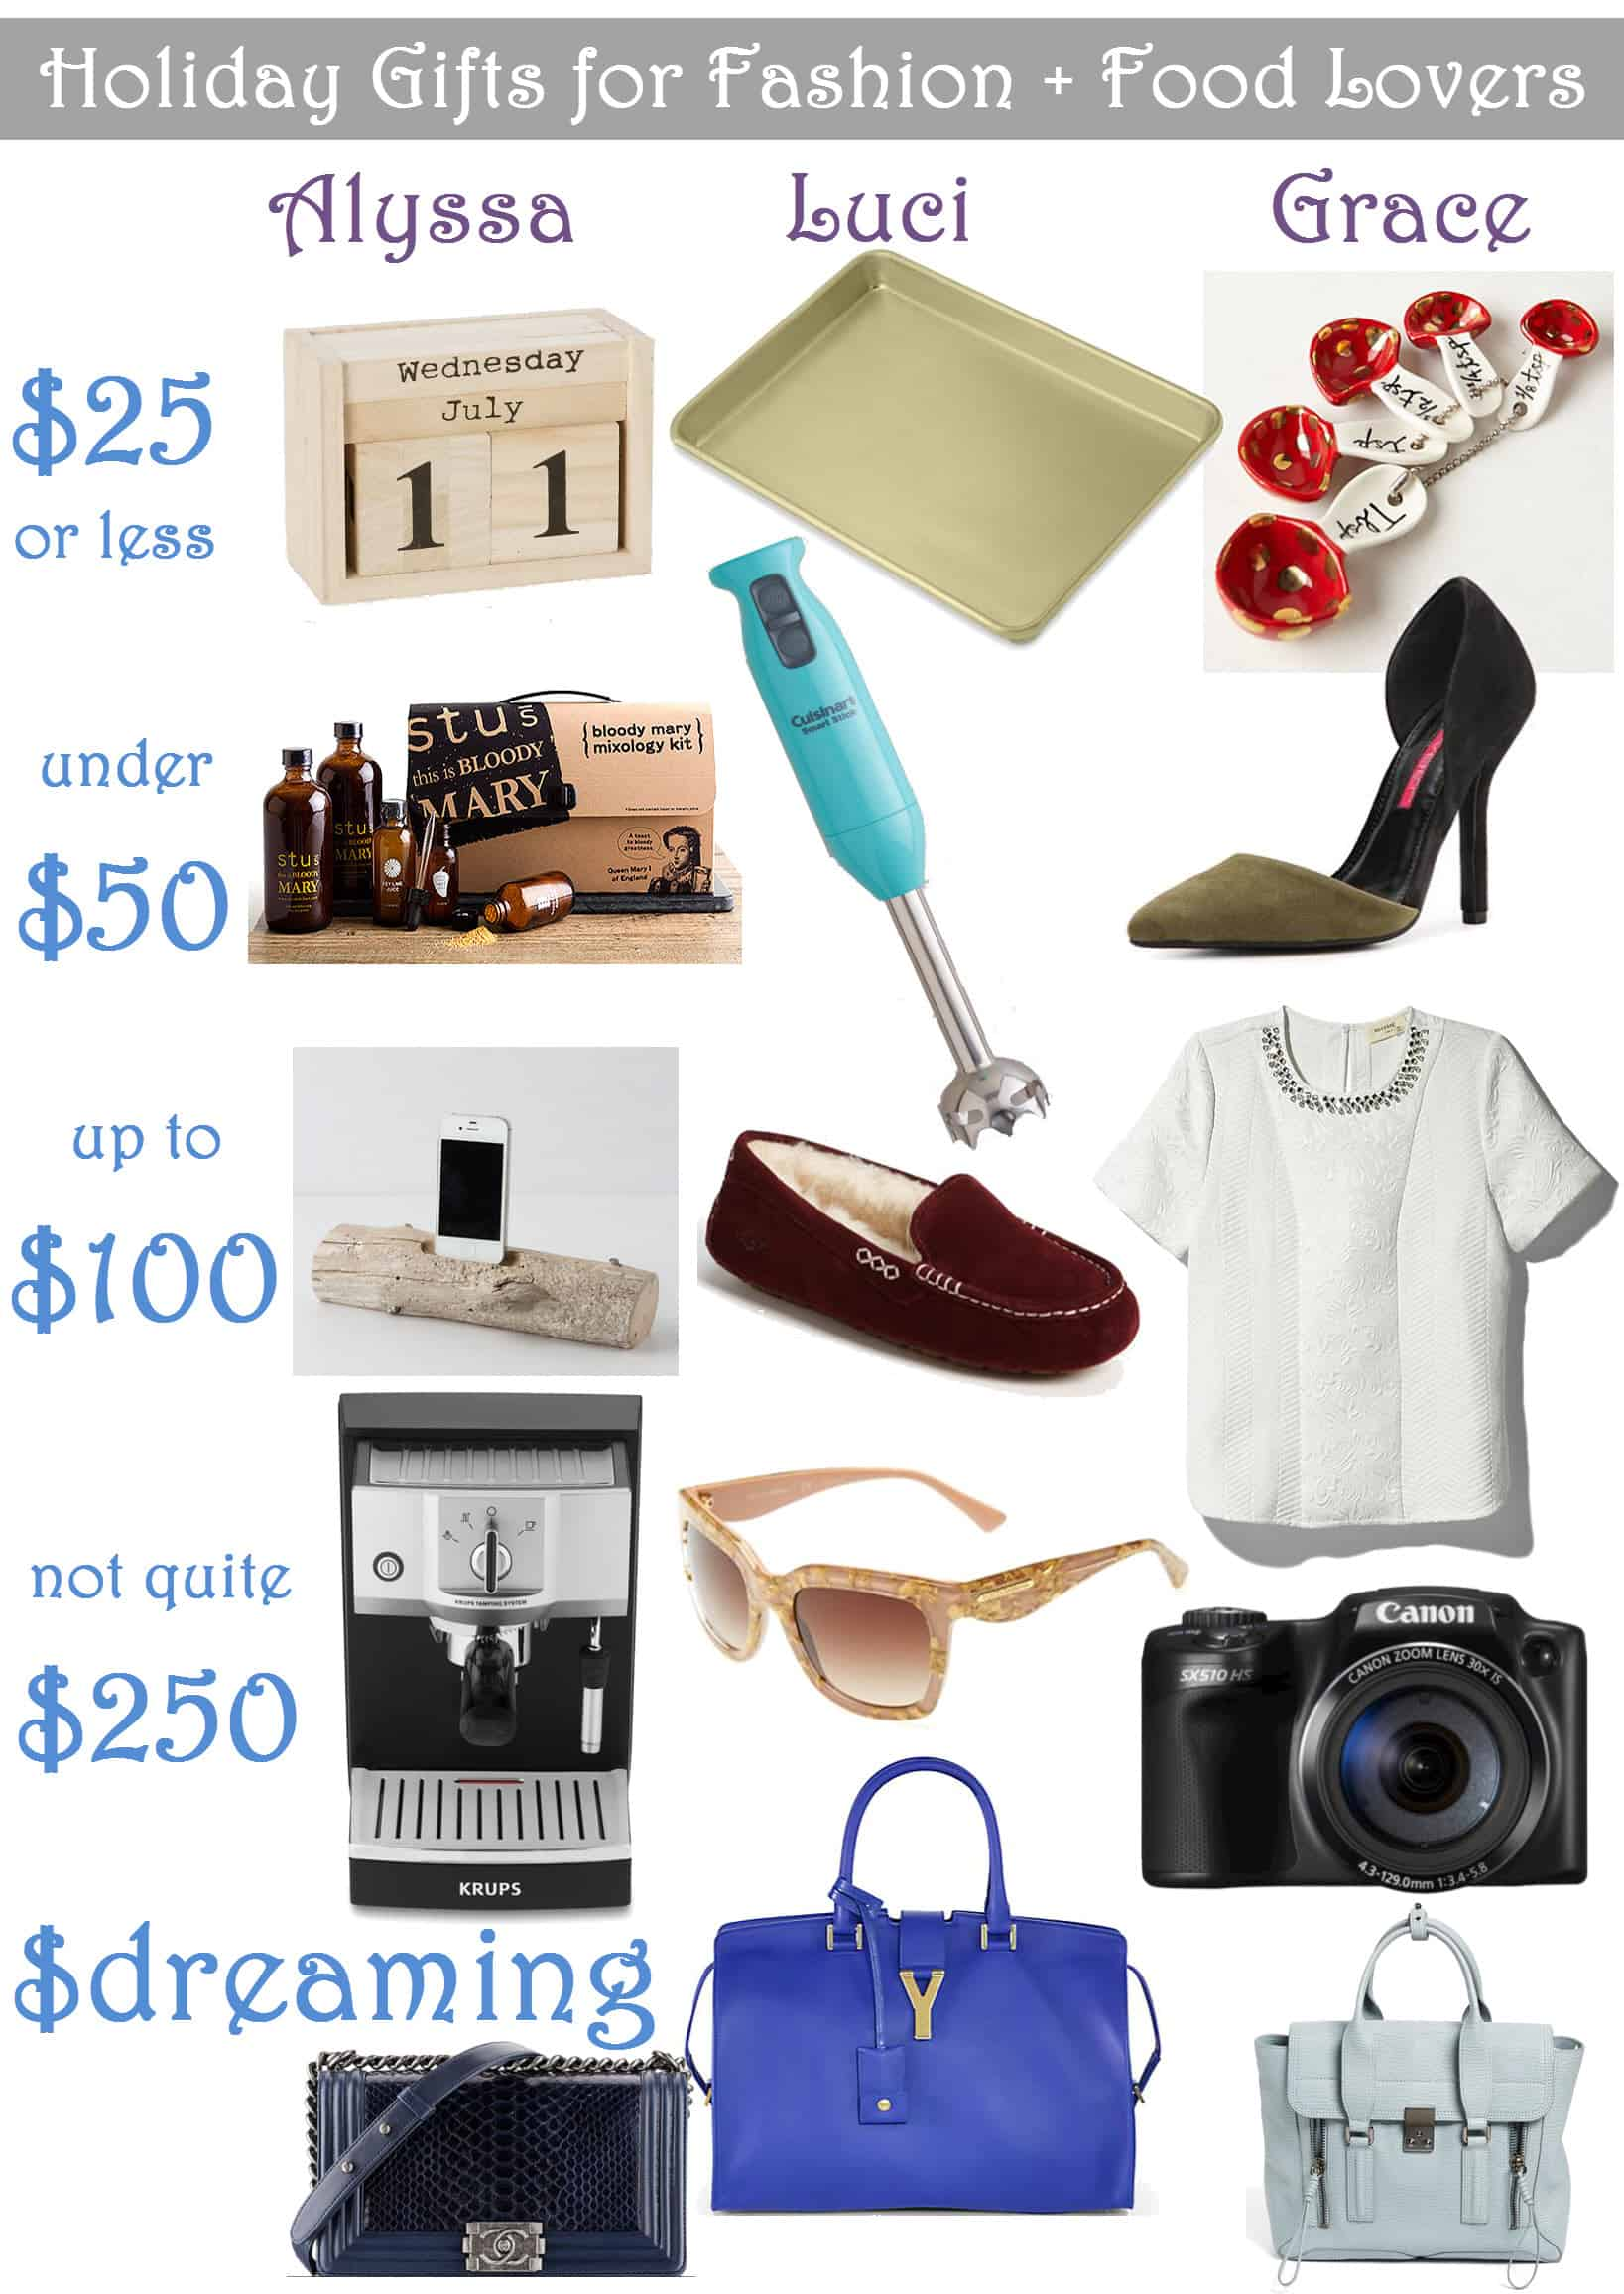 Holiday Gift Guide – Fashion & Food Lovers